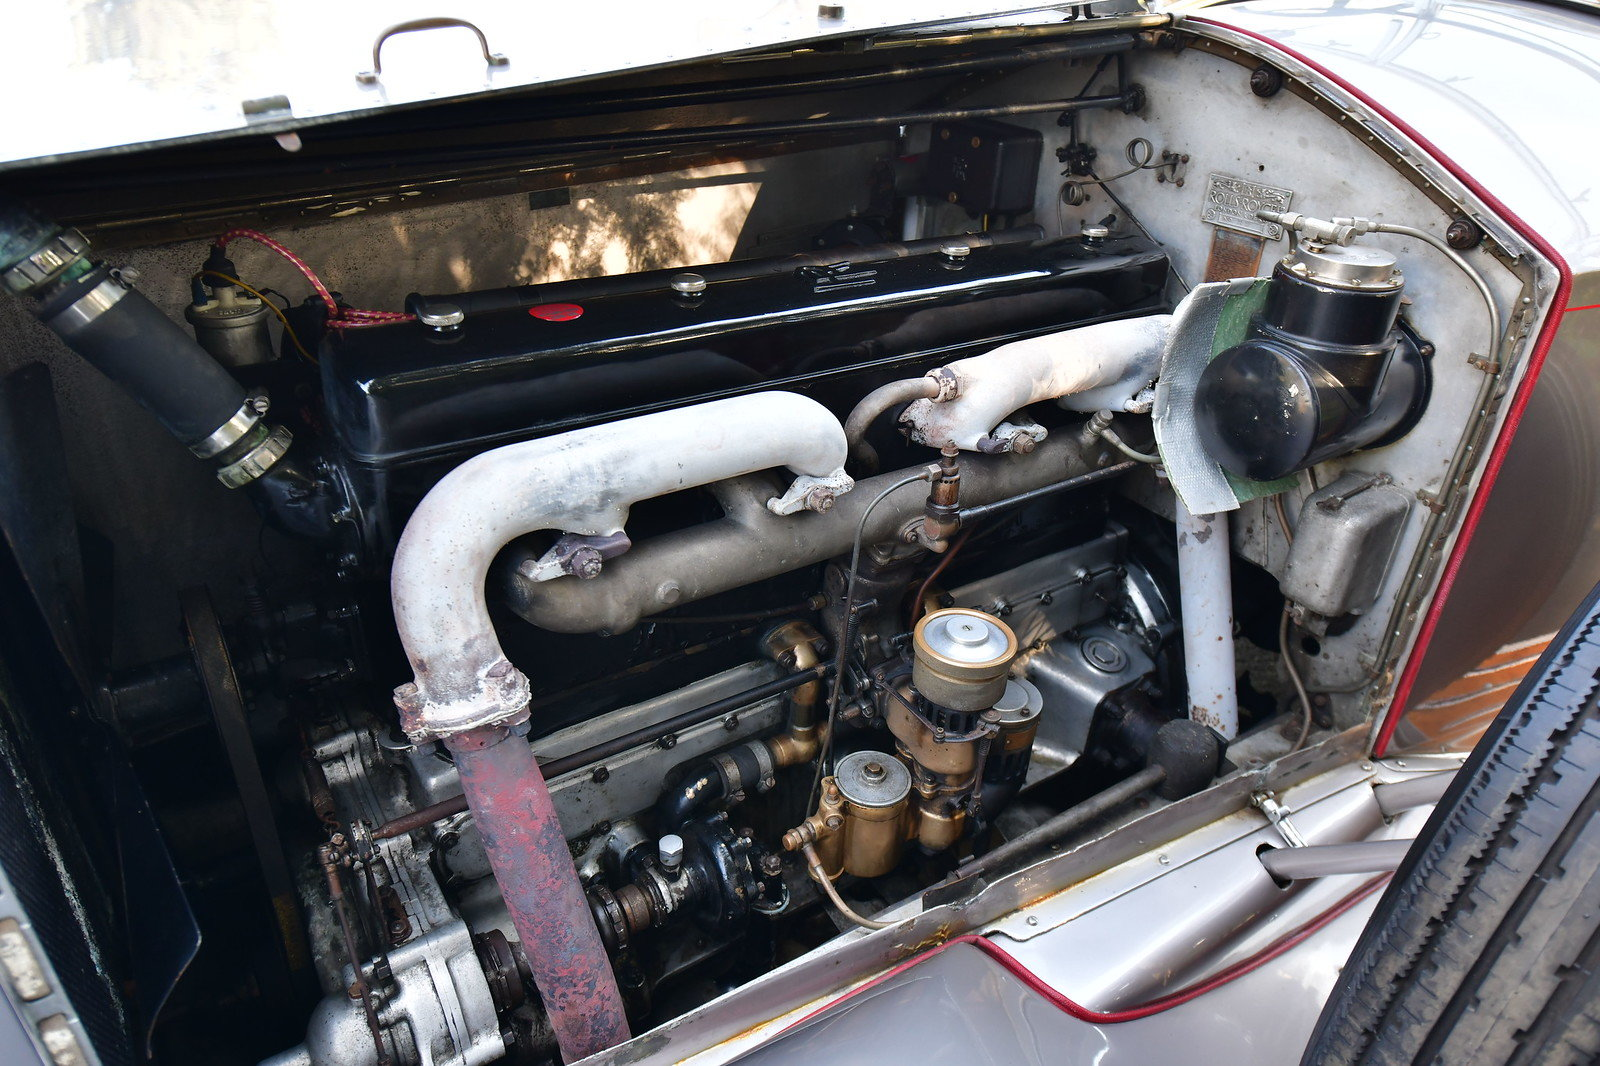 1927 Rolls Royce Phantom 1 Dual Cowl Tourer SOLD (picture 7 of 10)